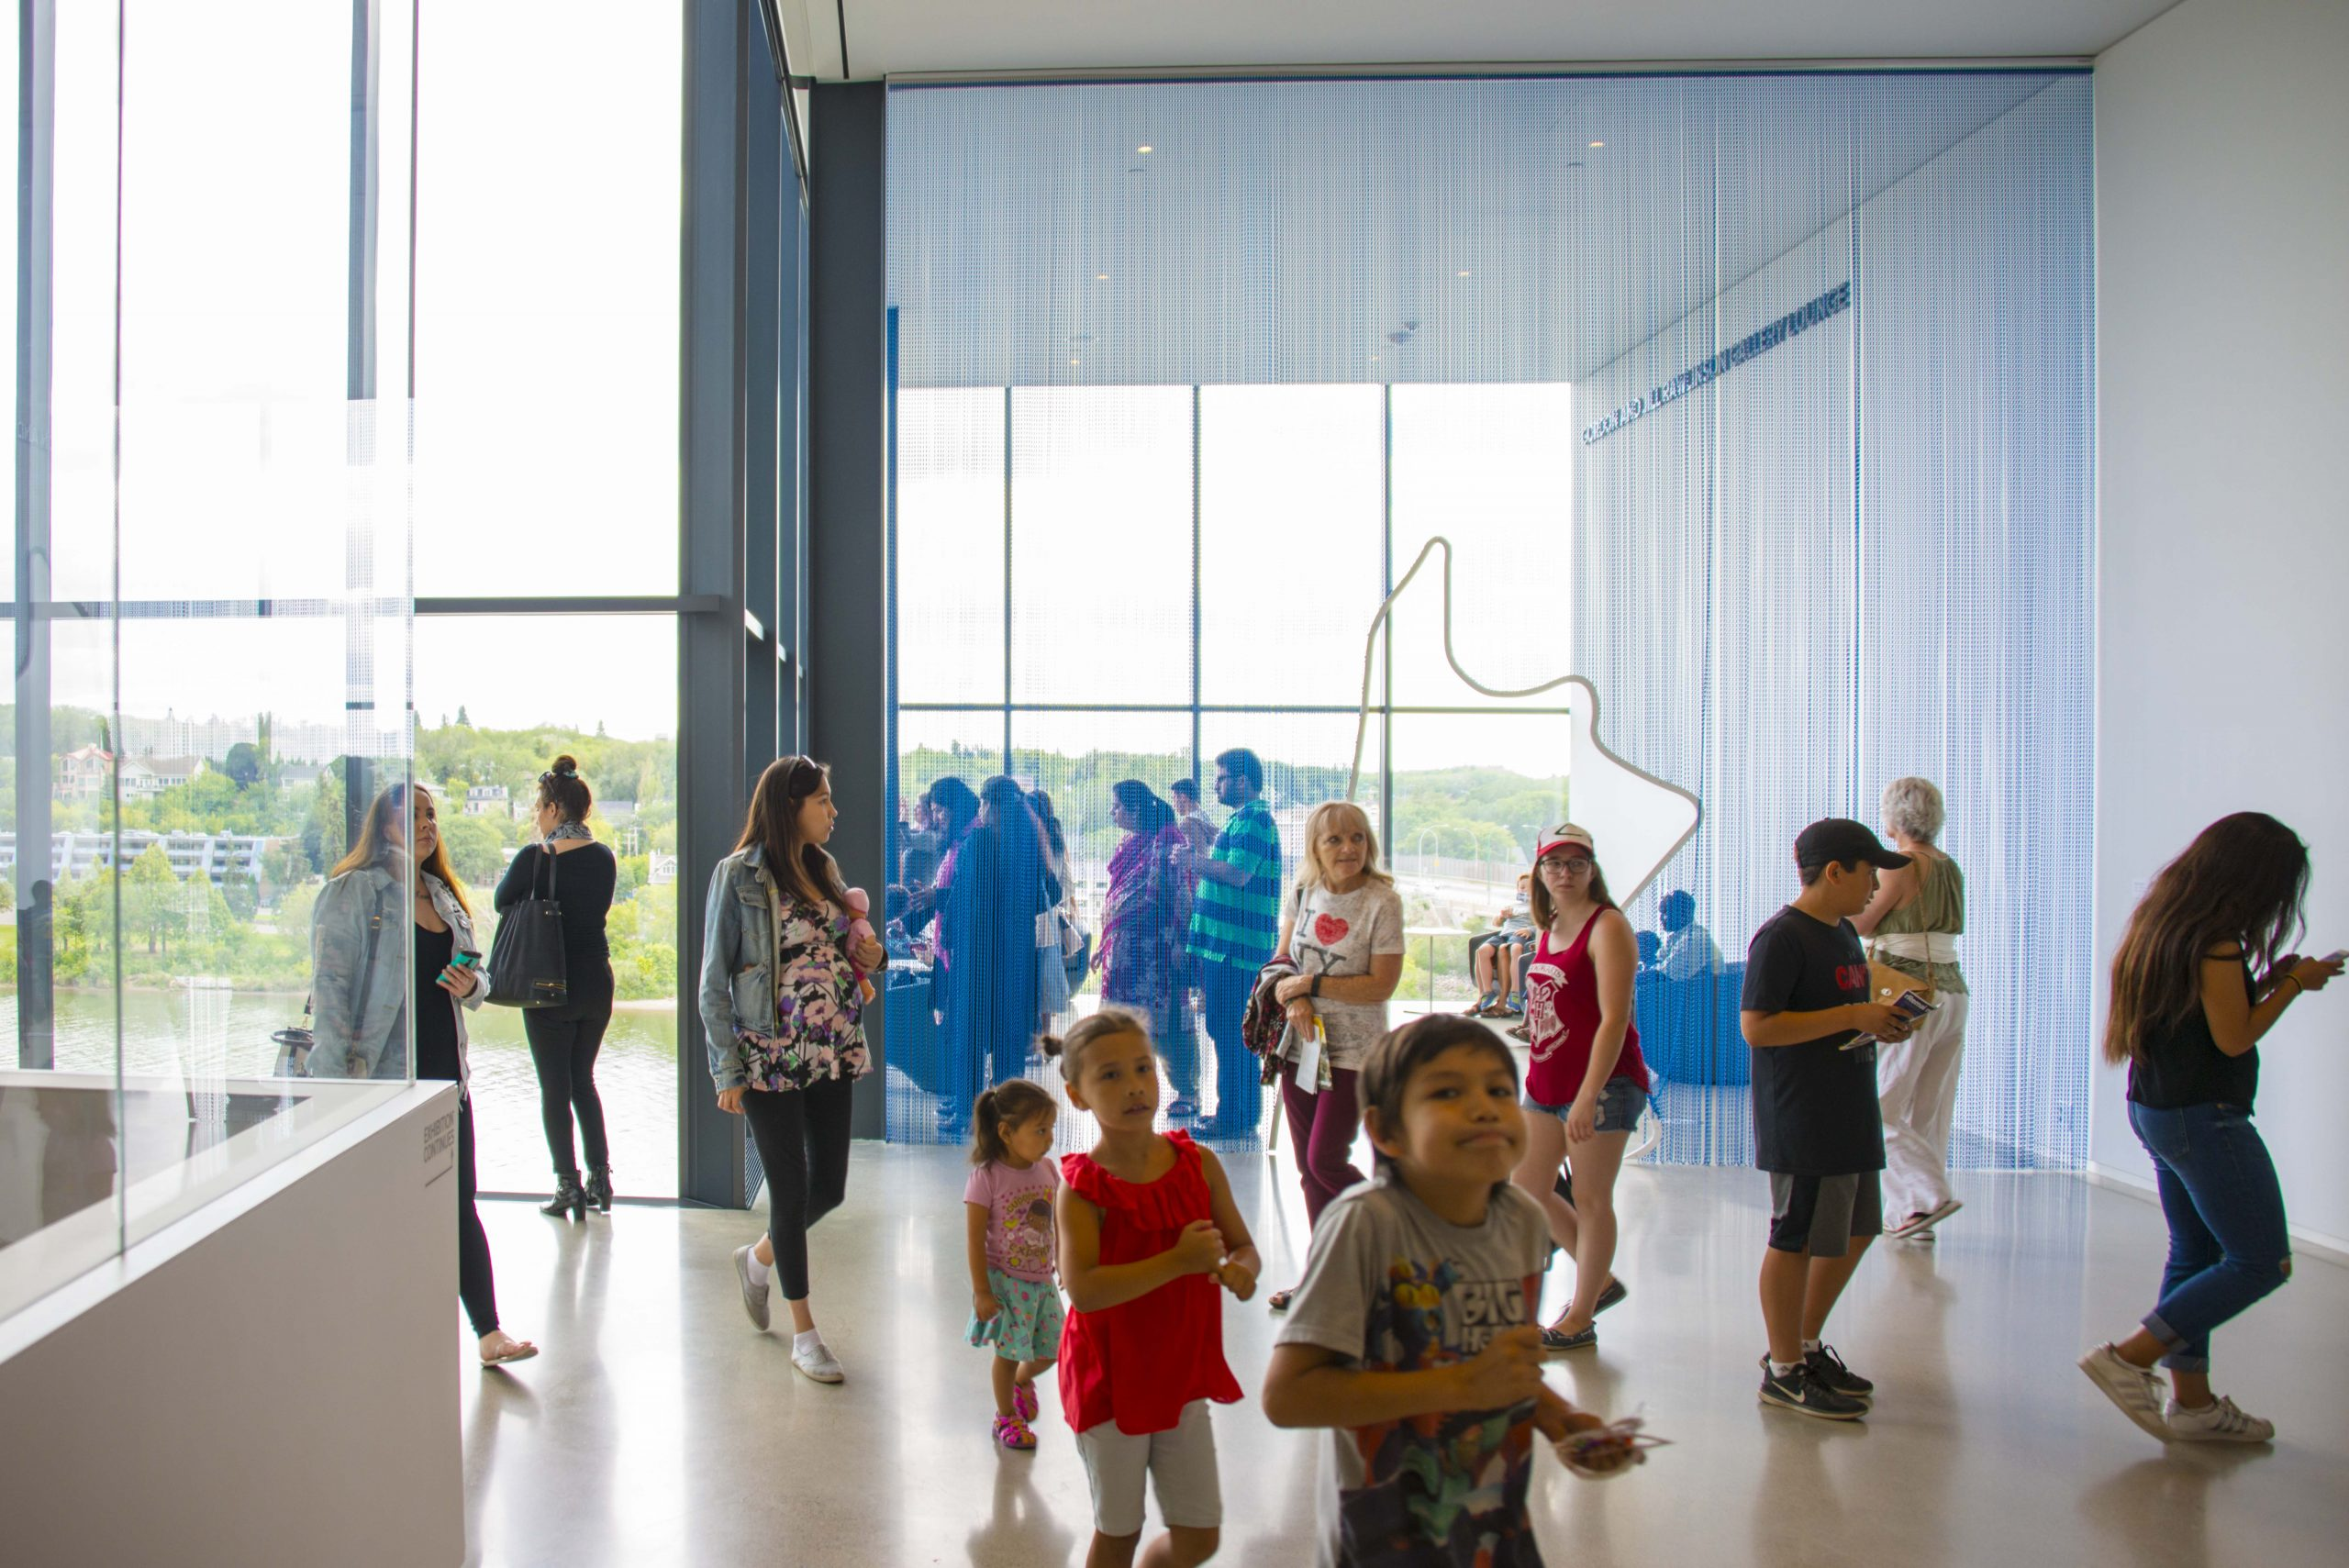 Rawlco Radio Welcomes over 2,900 Visitors to Free Admission Day at Remai Modern